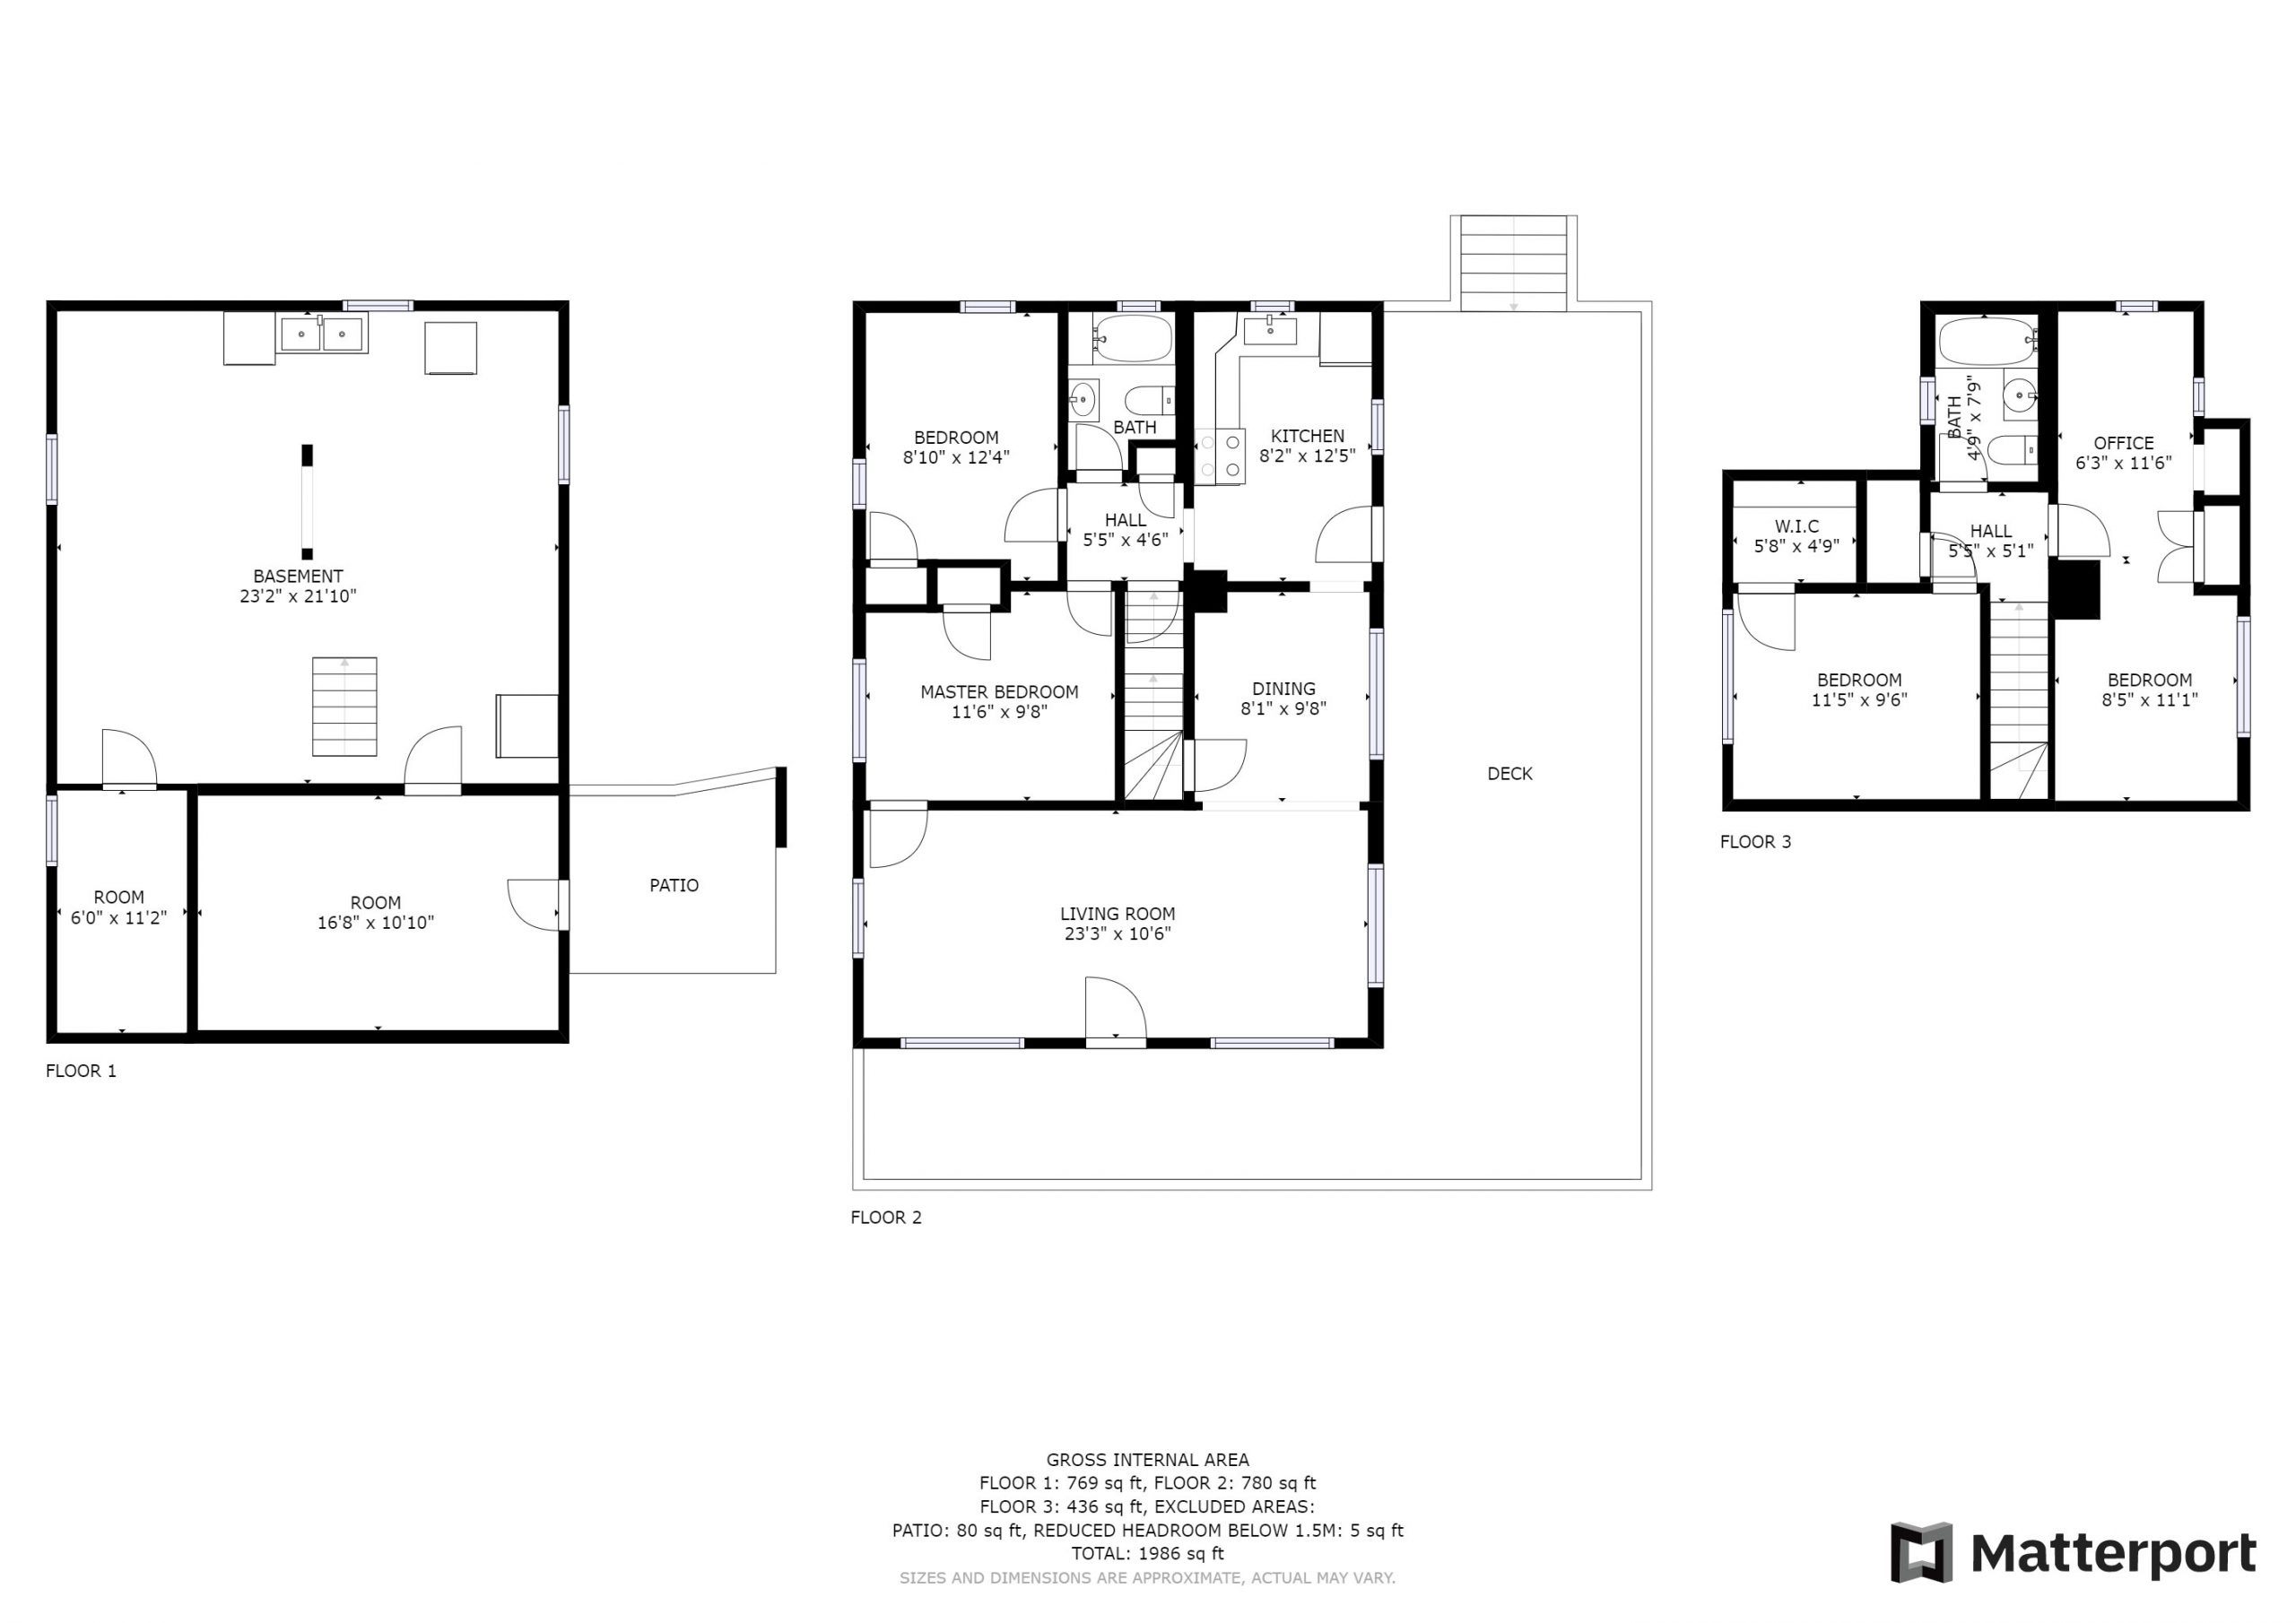 Floorplan & Approximate Dimensions - Matterport